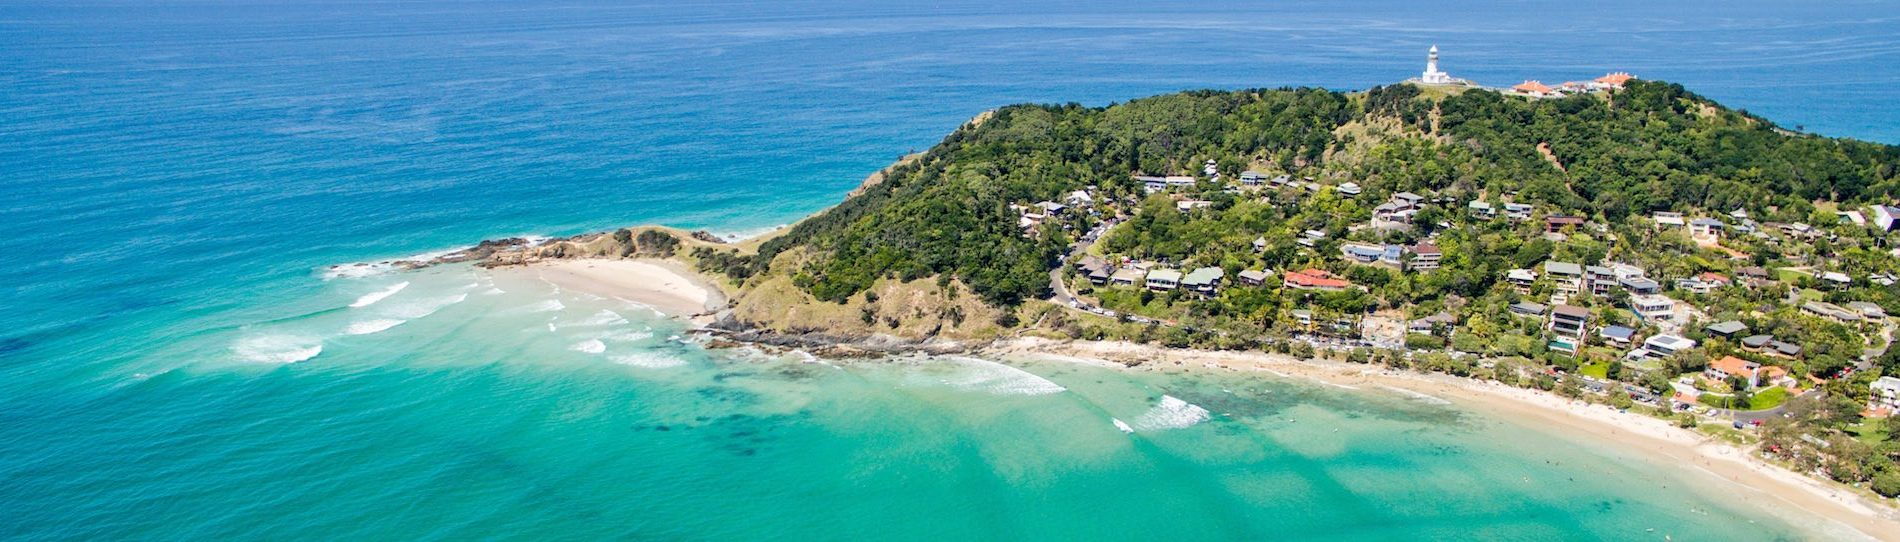 aerial view of byron bay city and beach